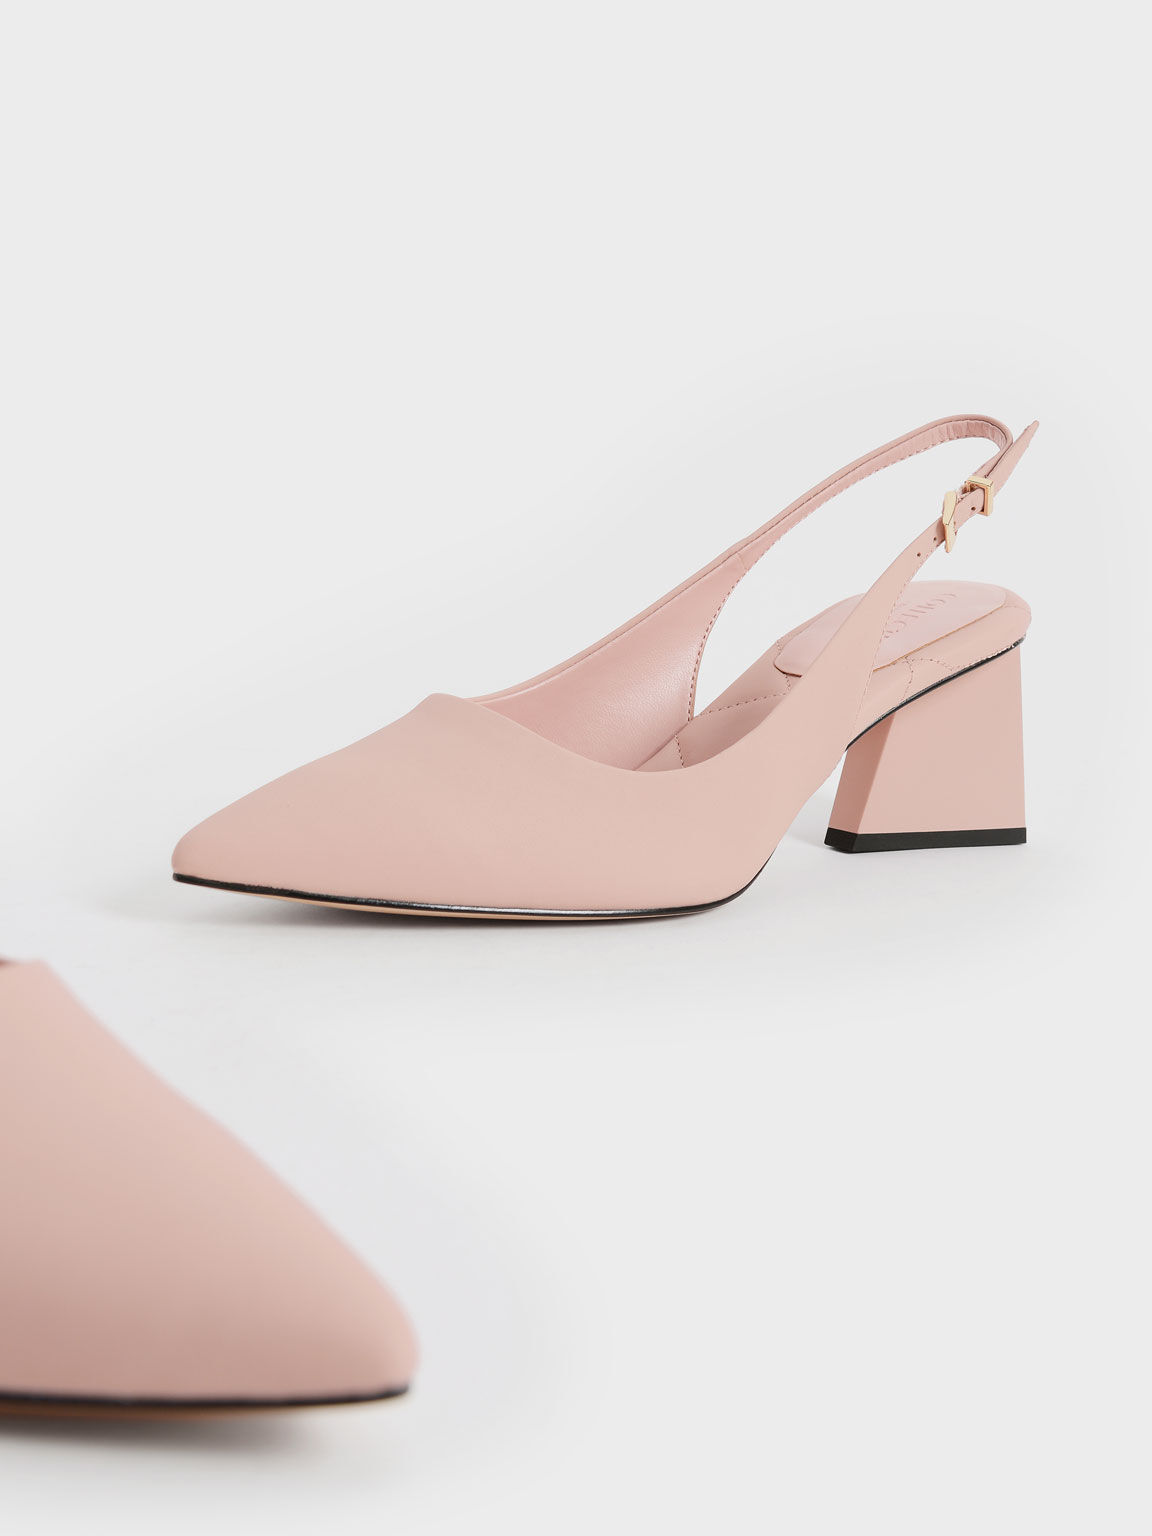 Leather Pointed Toe Slingback Pumps, Pink, hi-res